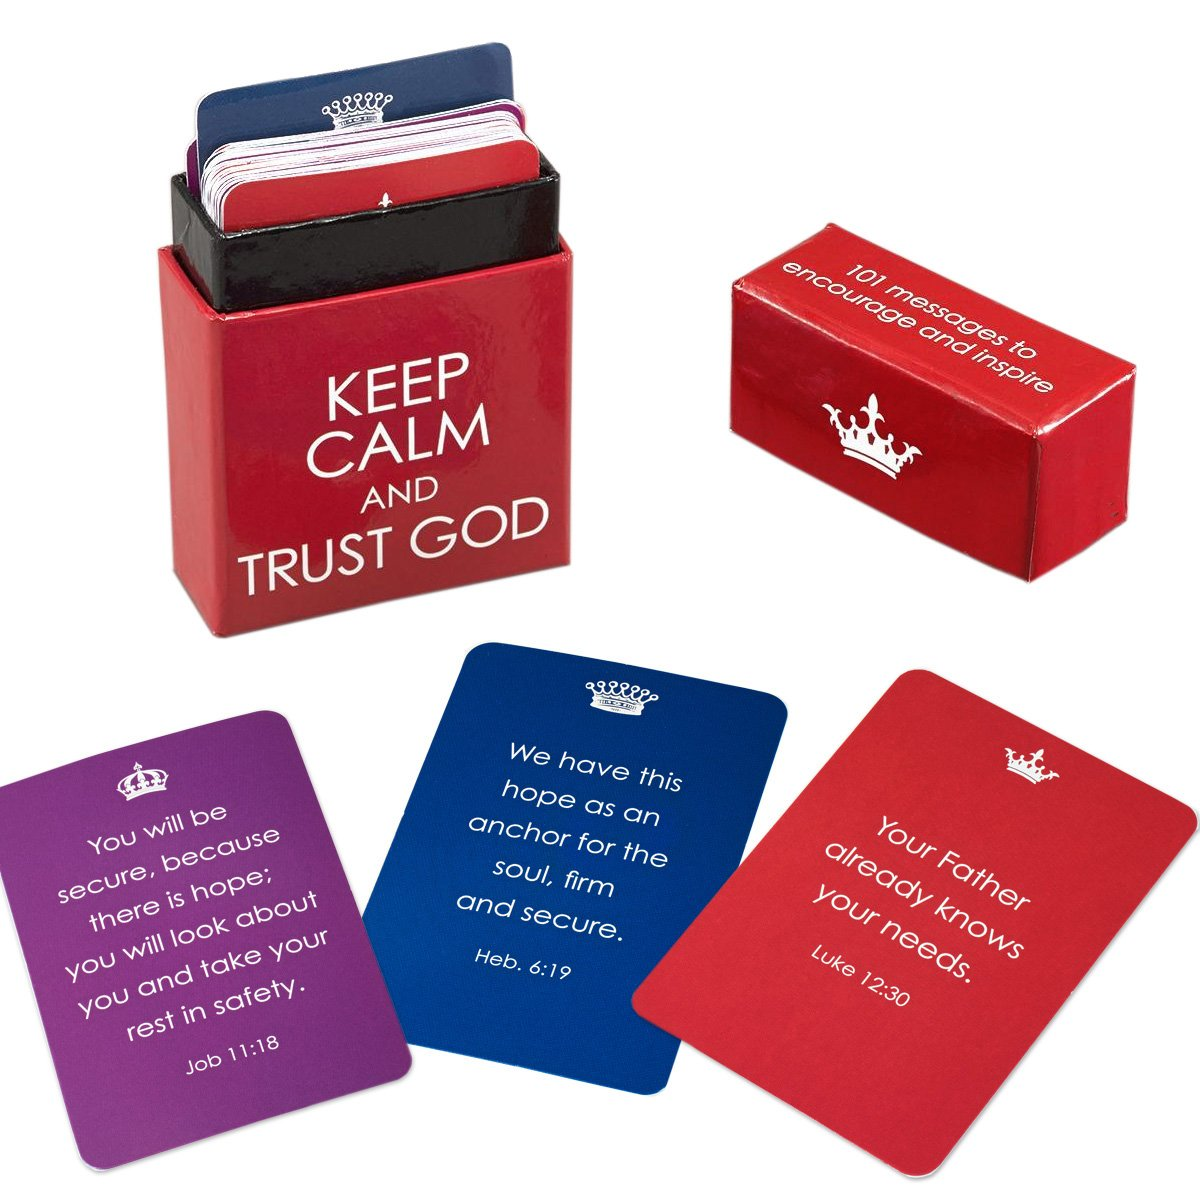 Keep Calm and Trust God Cards - A Box of Blessings: Christian Art Gifts:  6006937117631: Amazon.com: Books